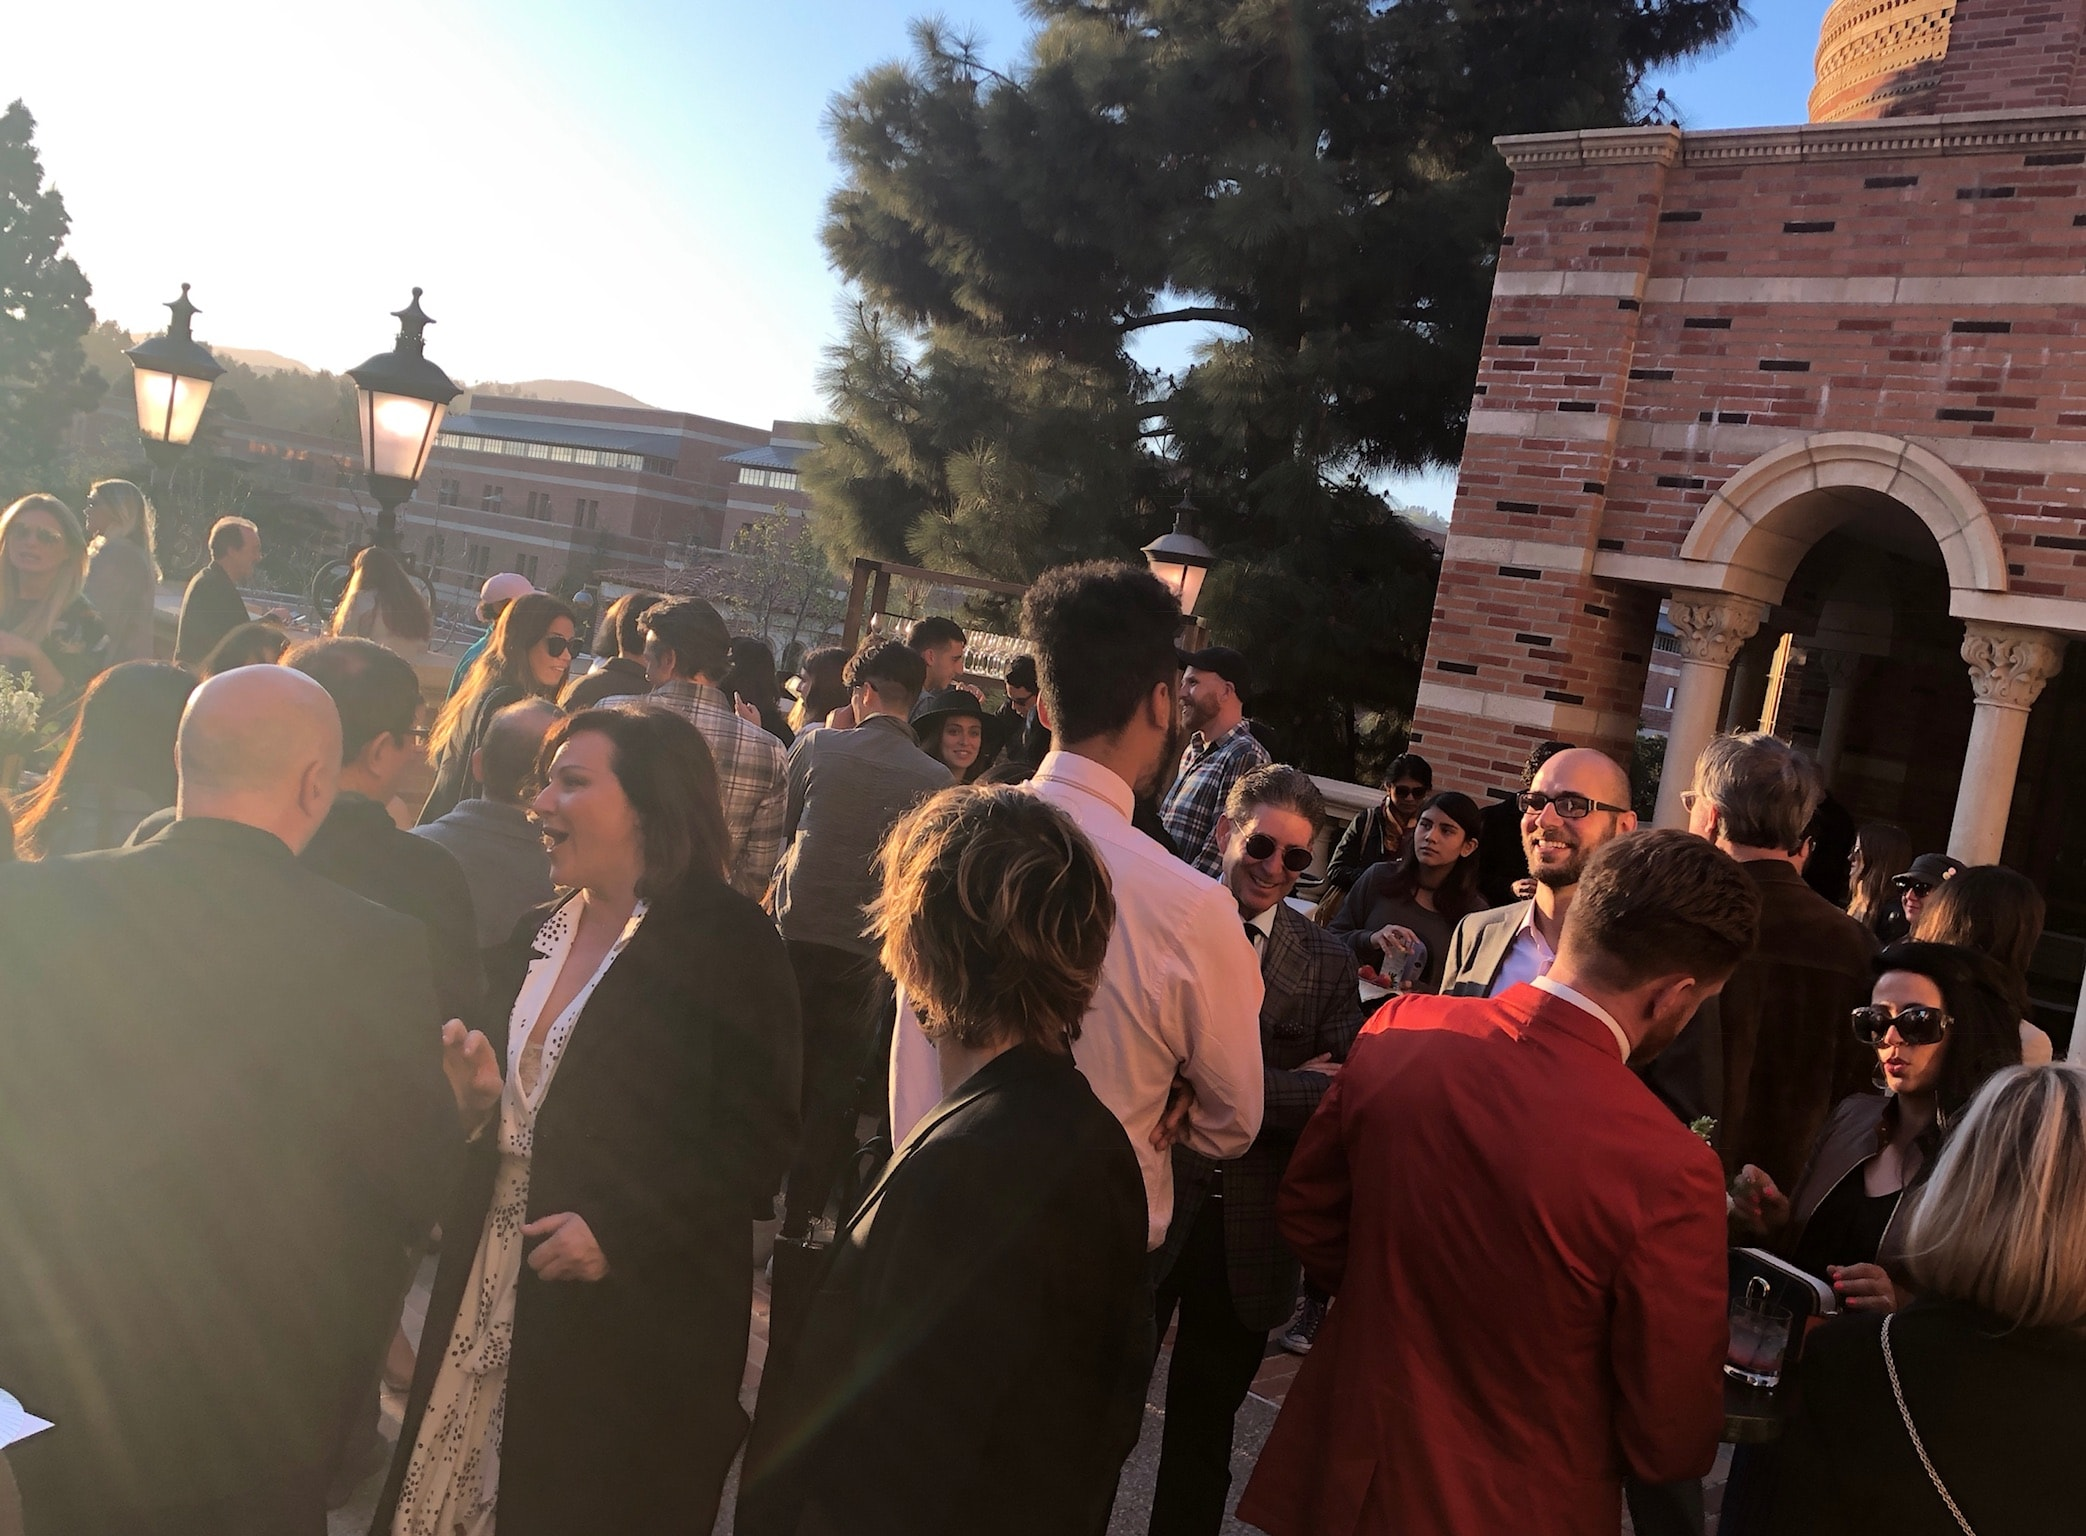 Guests mingling on the terrace of Royce Hall